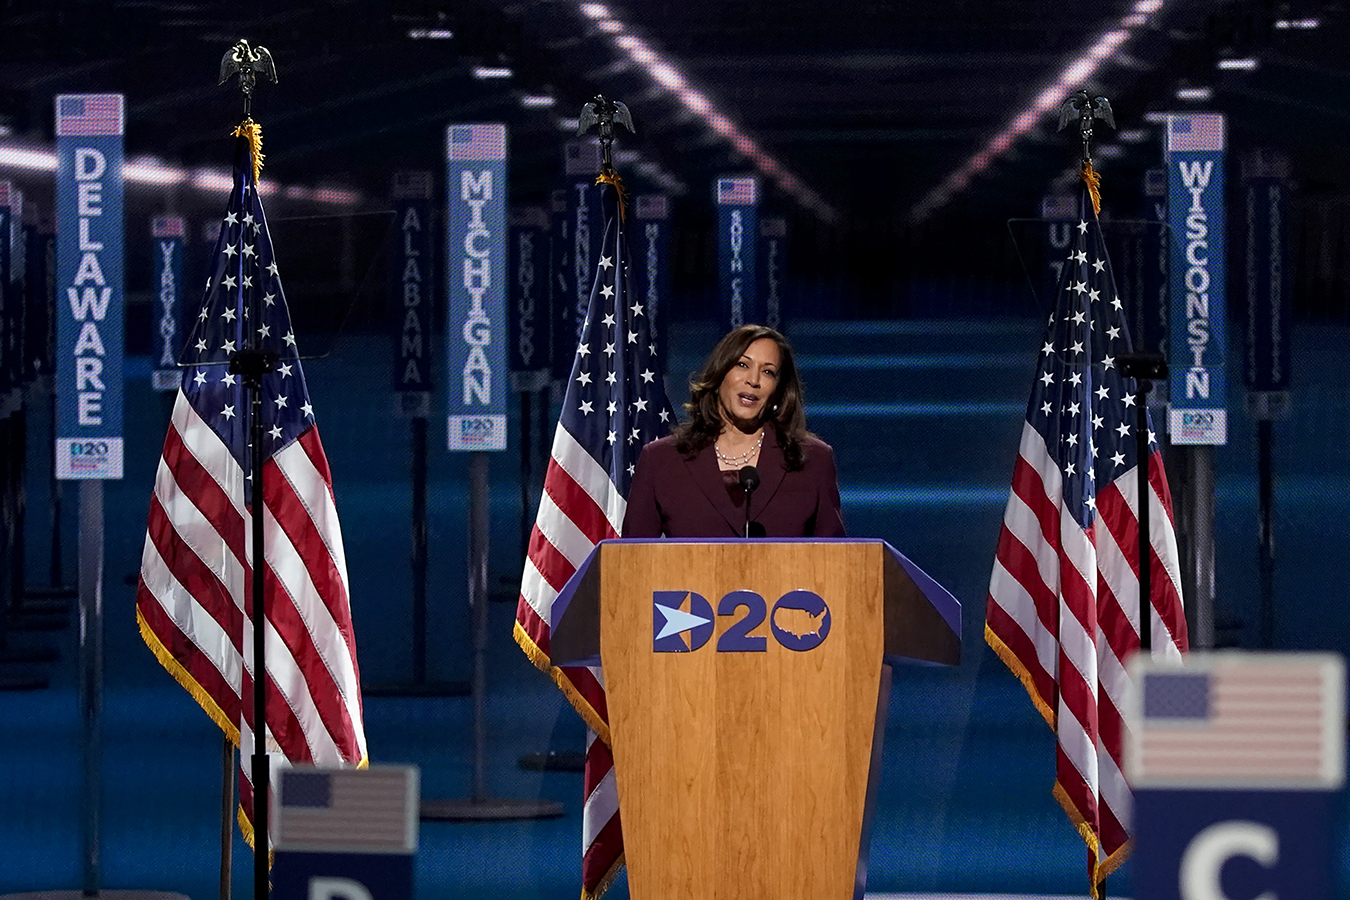 Democratic Convention, Night 3: Making the Party Lines Clear